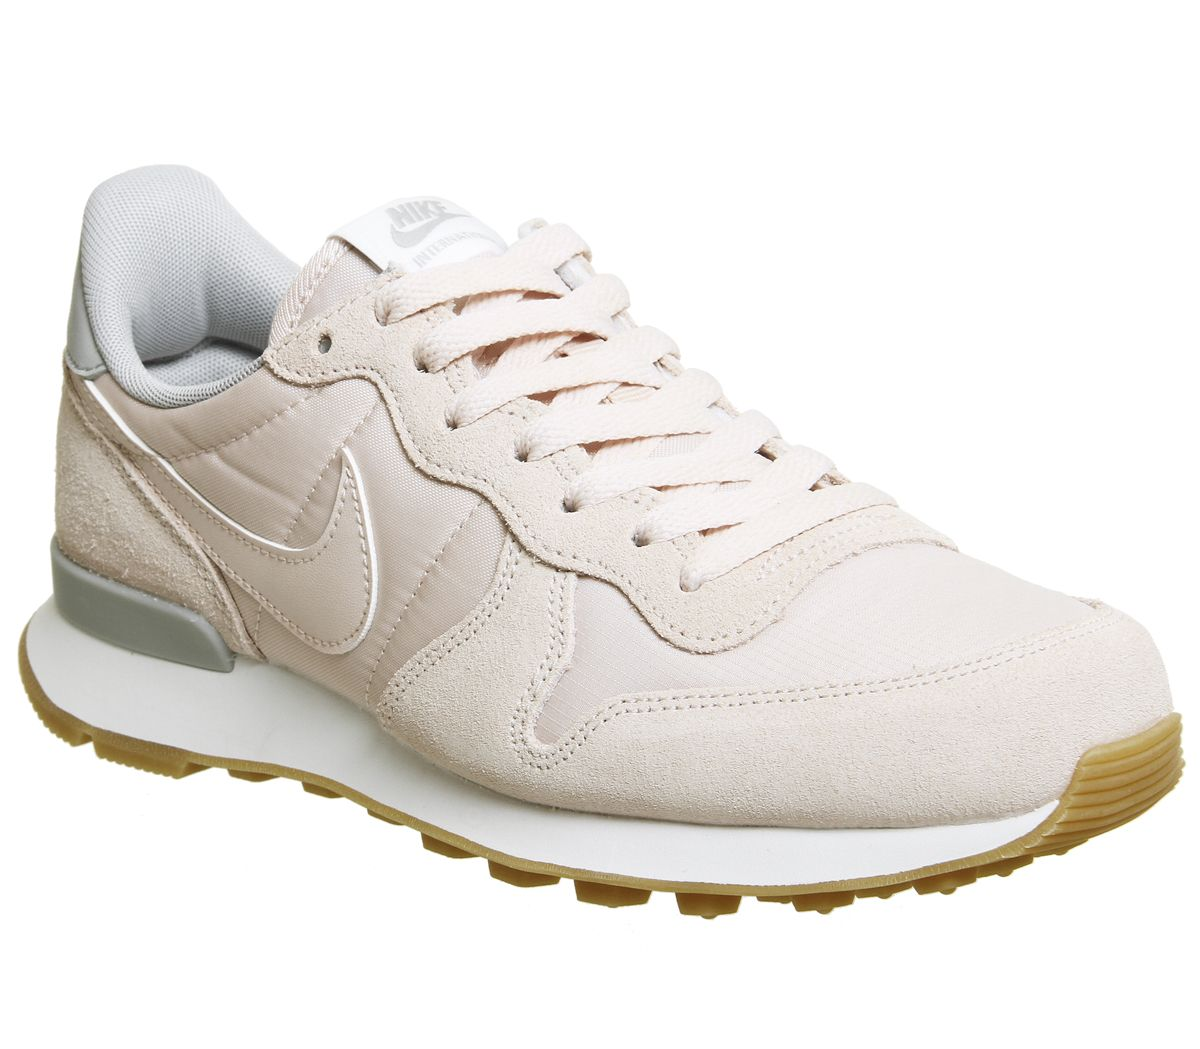 buy popular f2cbe 4722f Nike Nike Internationalist Trainers Barely Rose - Hers trainers